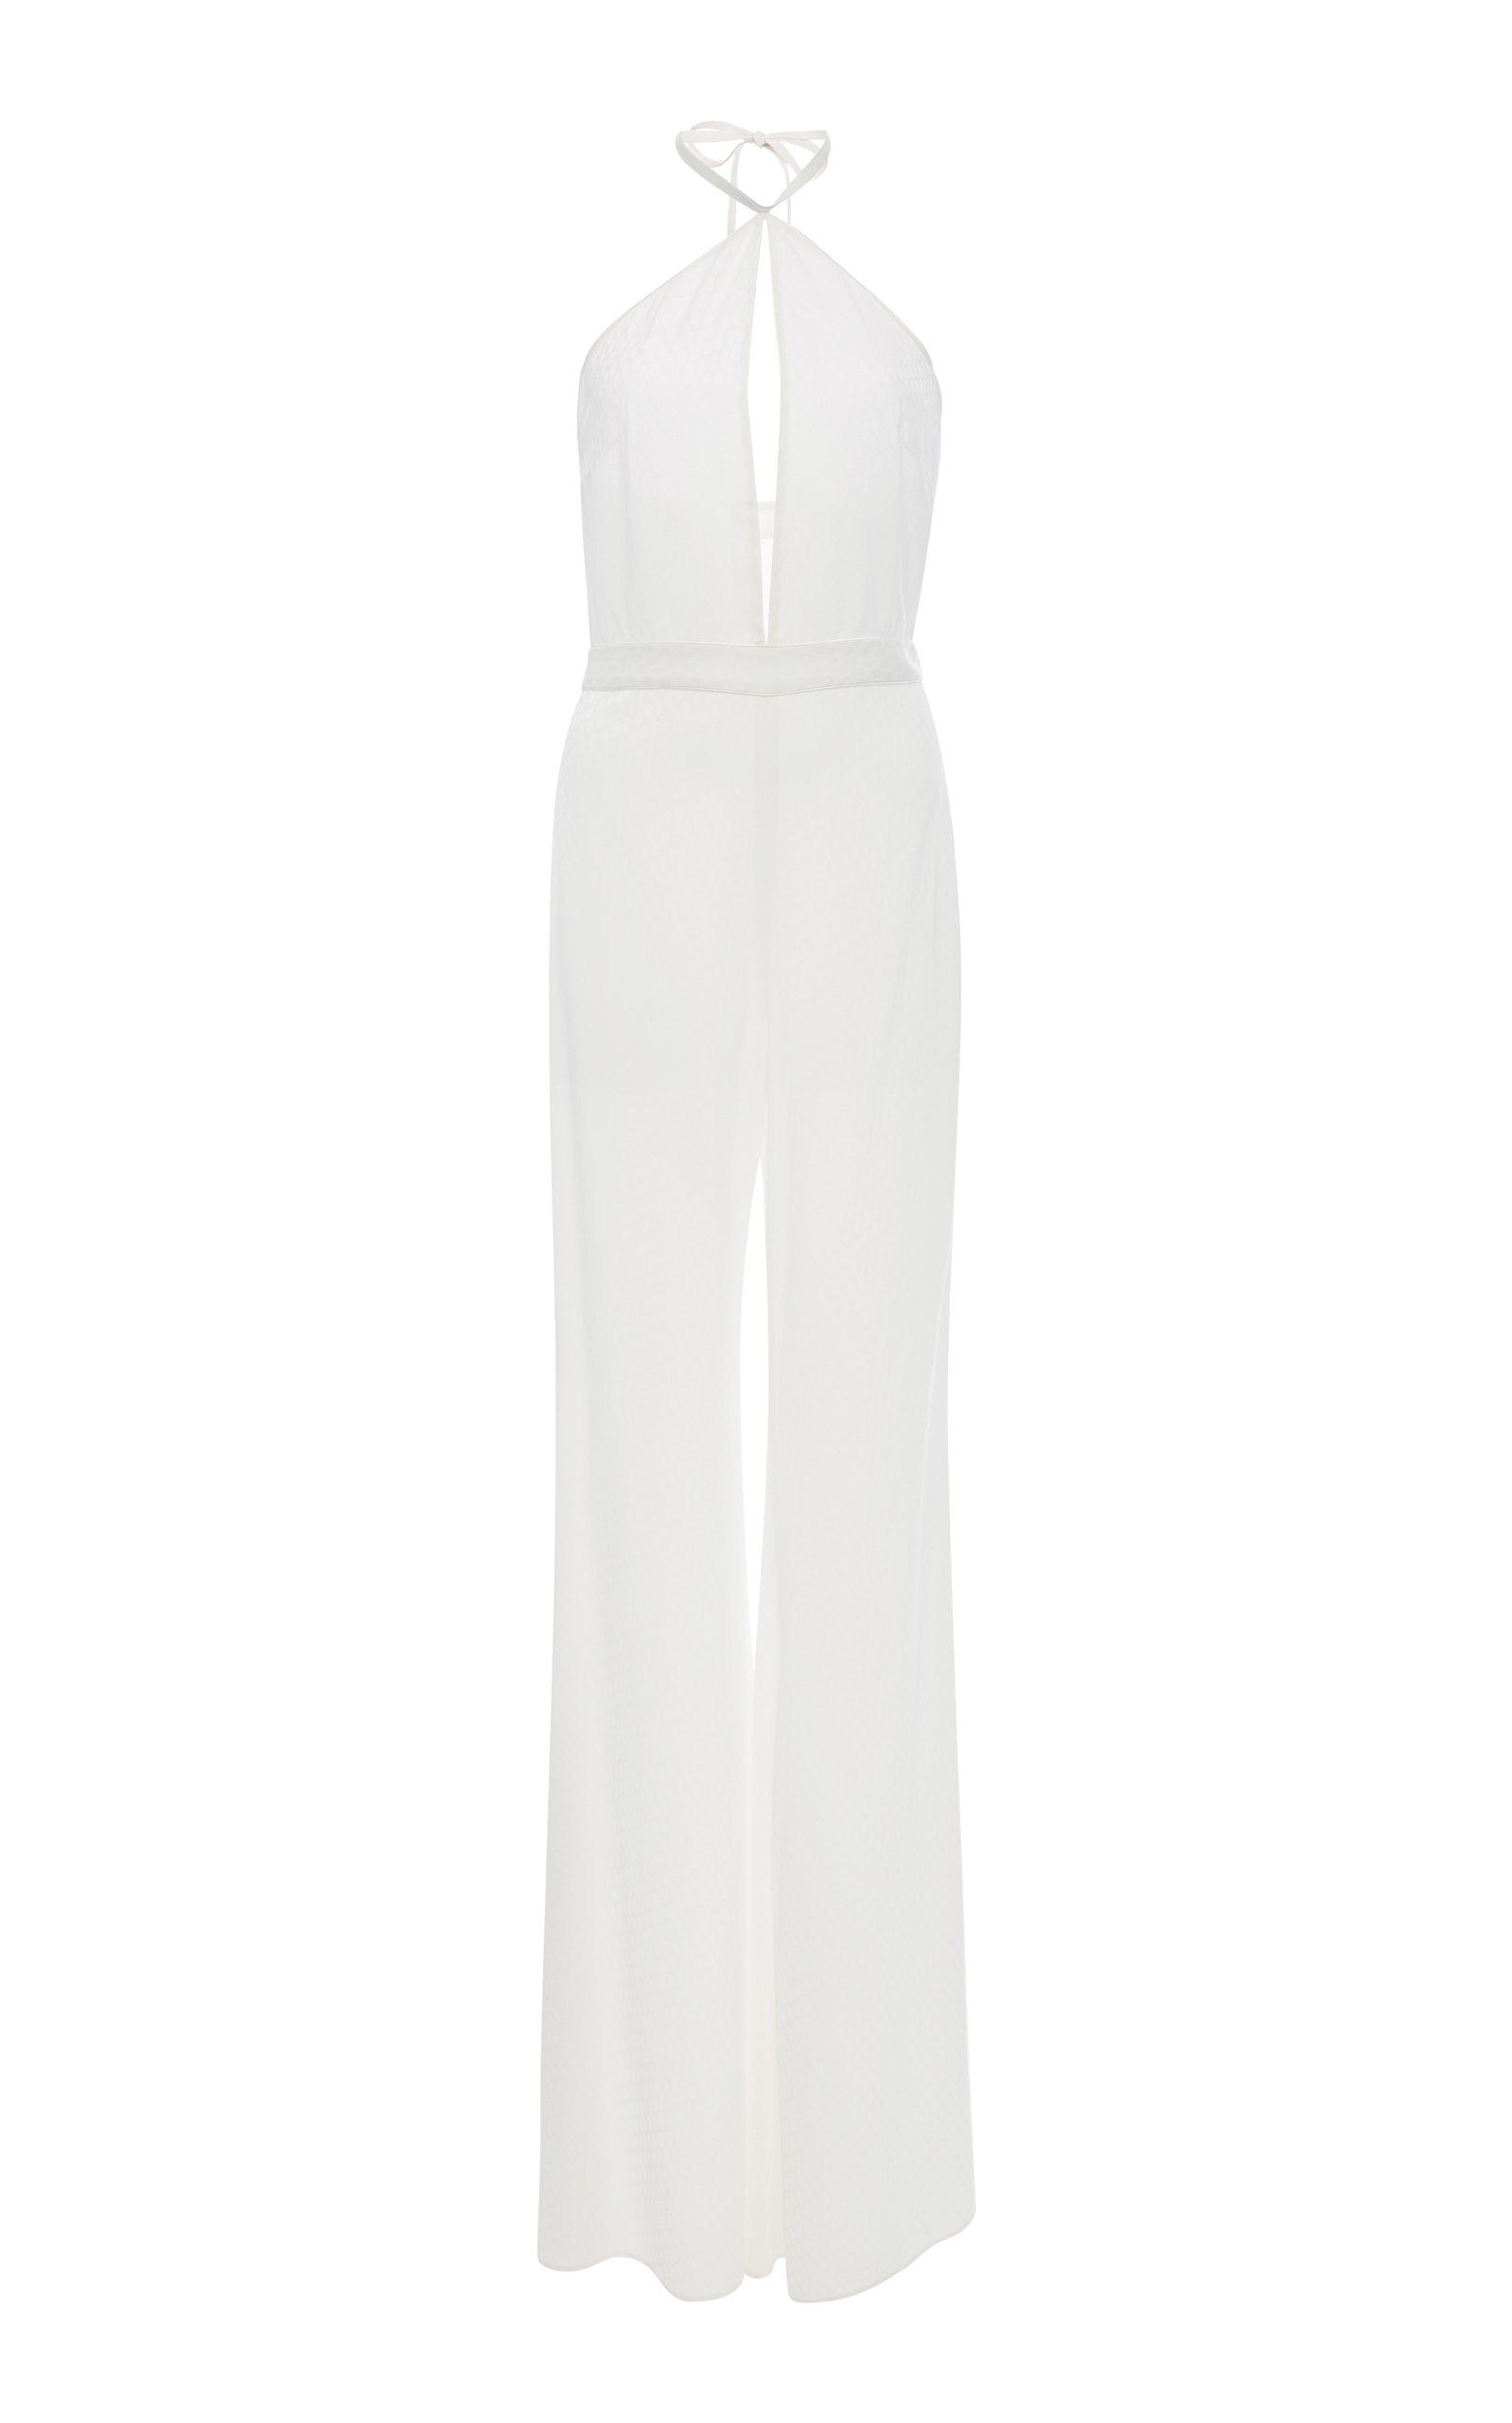 6cfa0f43a81 This Alexis Naila halter jumpsuit features a sleek silhouette with a halter  neckline front keyhole cutout and wide leg pants. Available From Looks